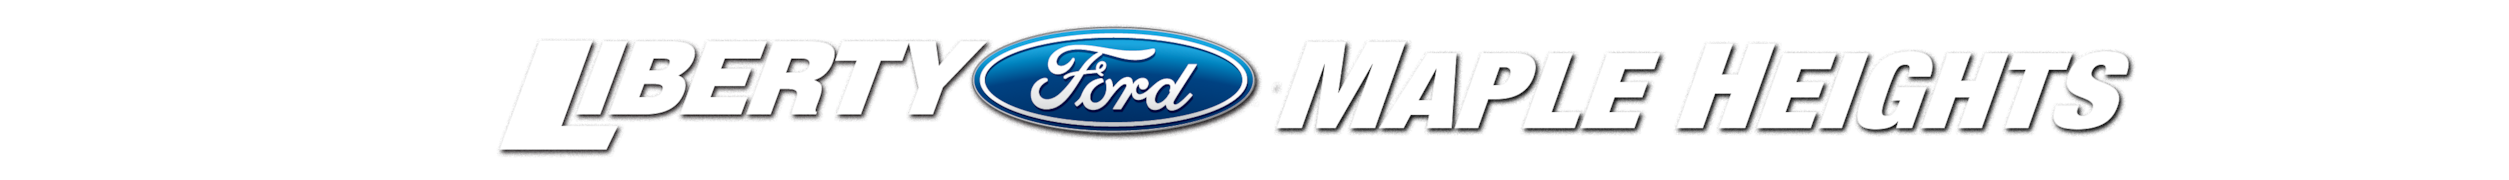 Liberty Ford Maple Heights >> Liberty Ford Maple Heights New Used Ford Dealership